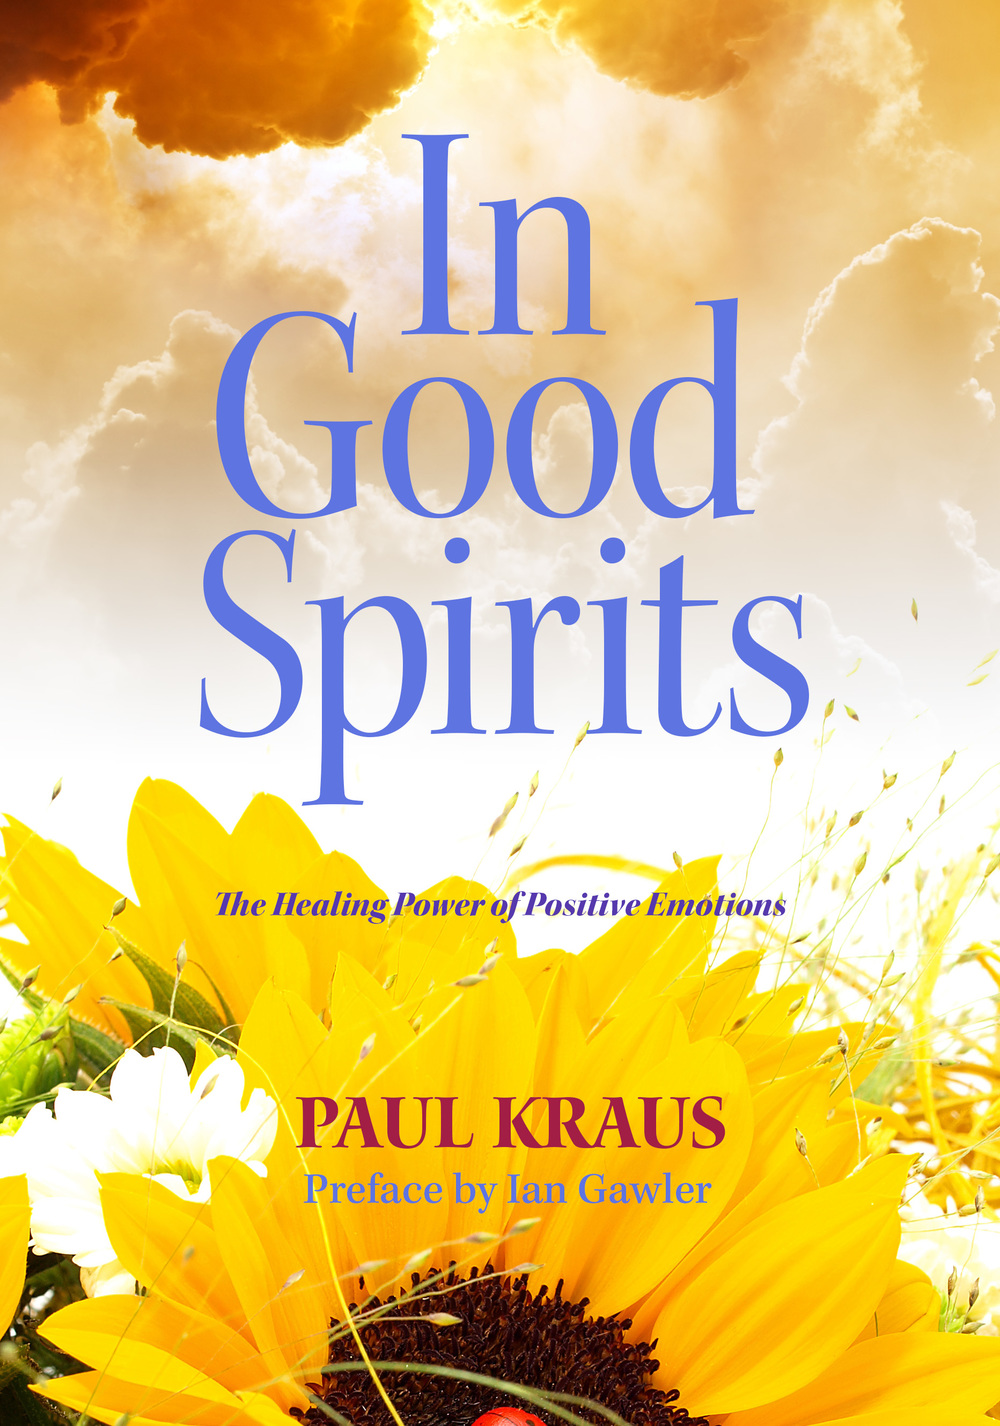 In Good Spirits cover 04.jpg